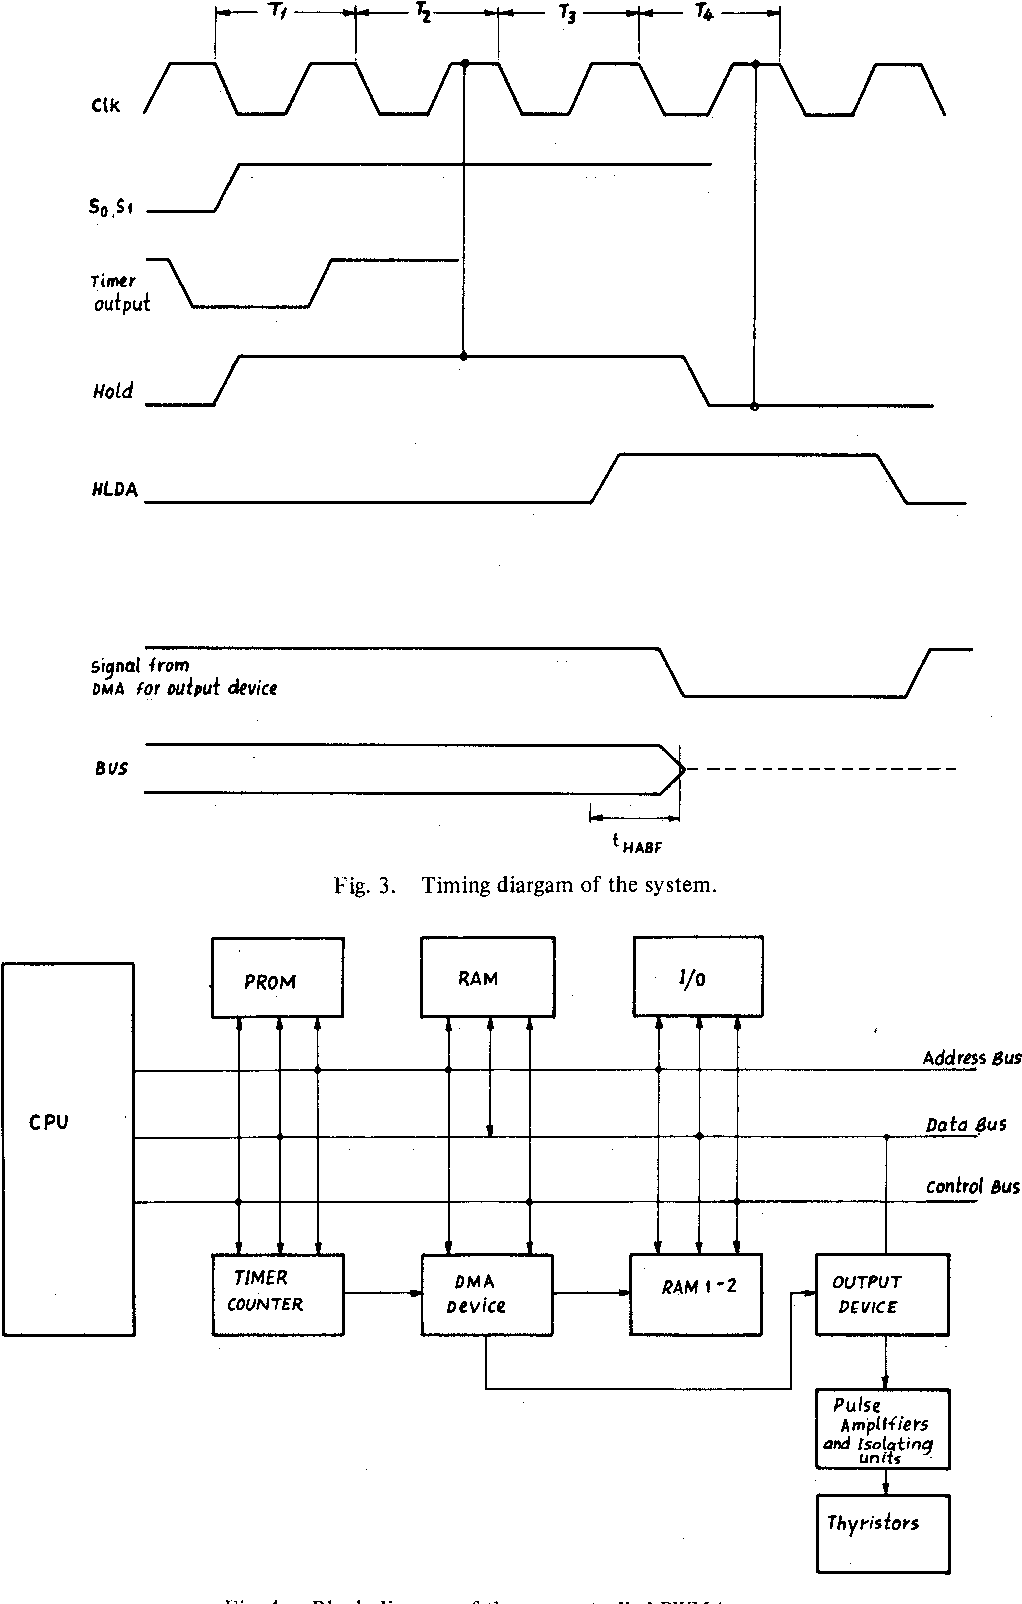 Microprocessor Based Sinusoidal PWM Inverter by DMA Transfer